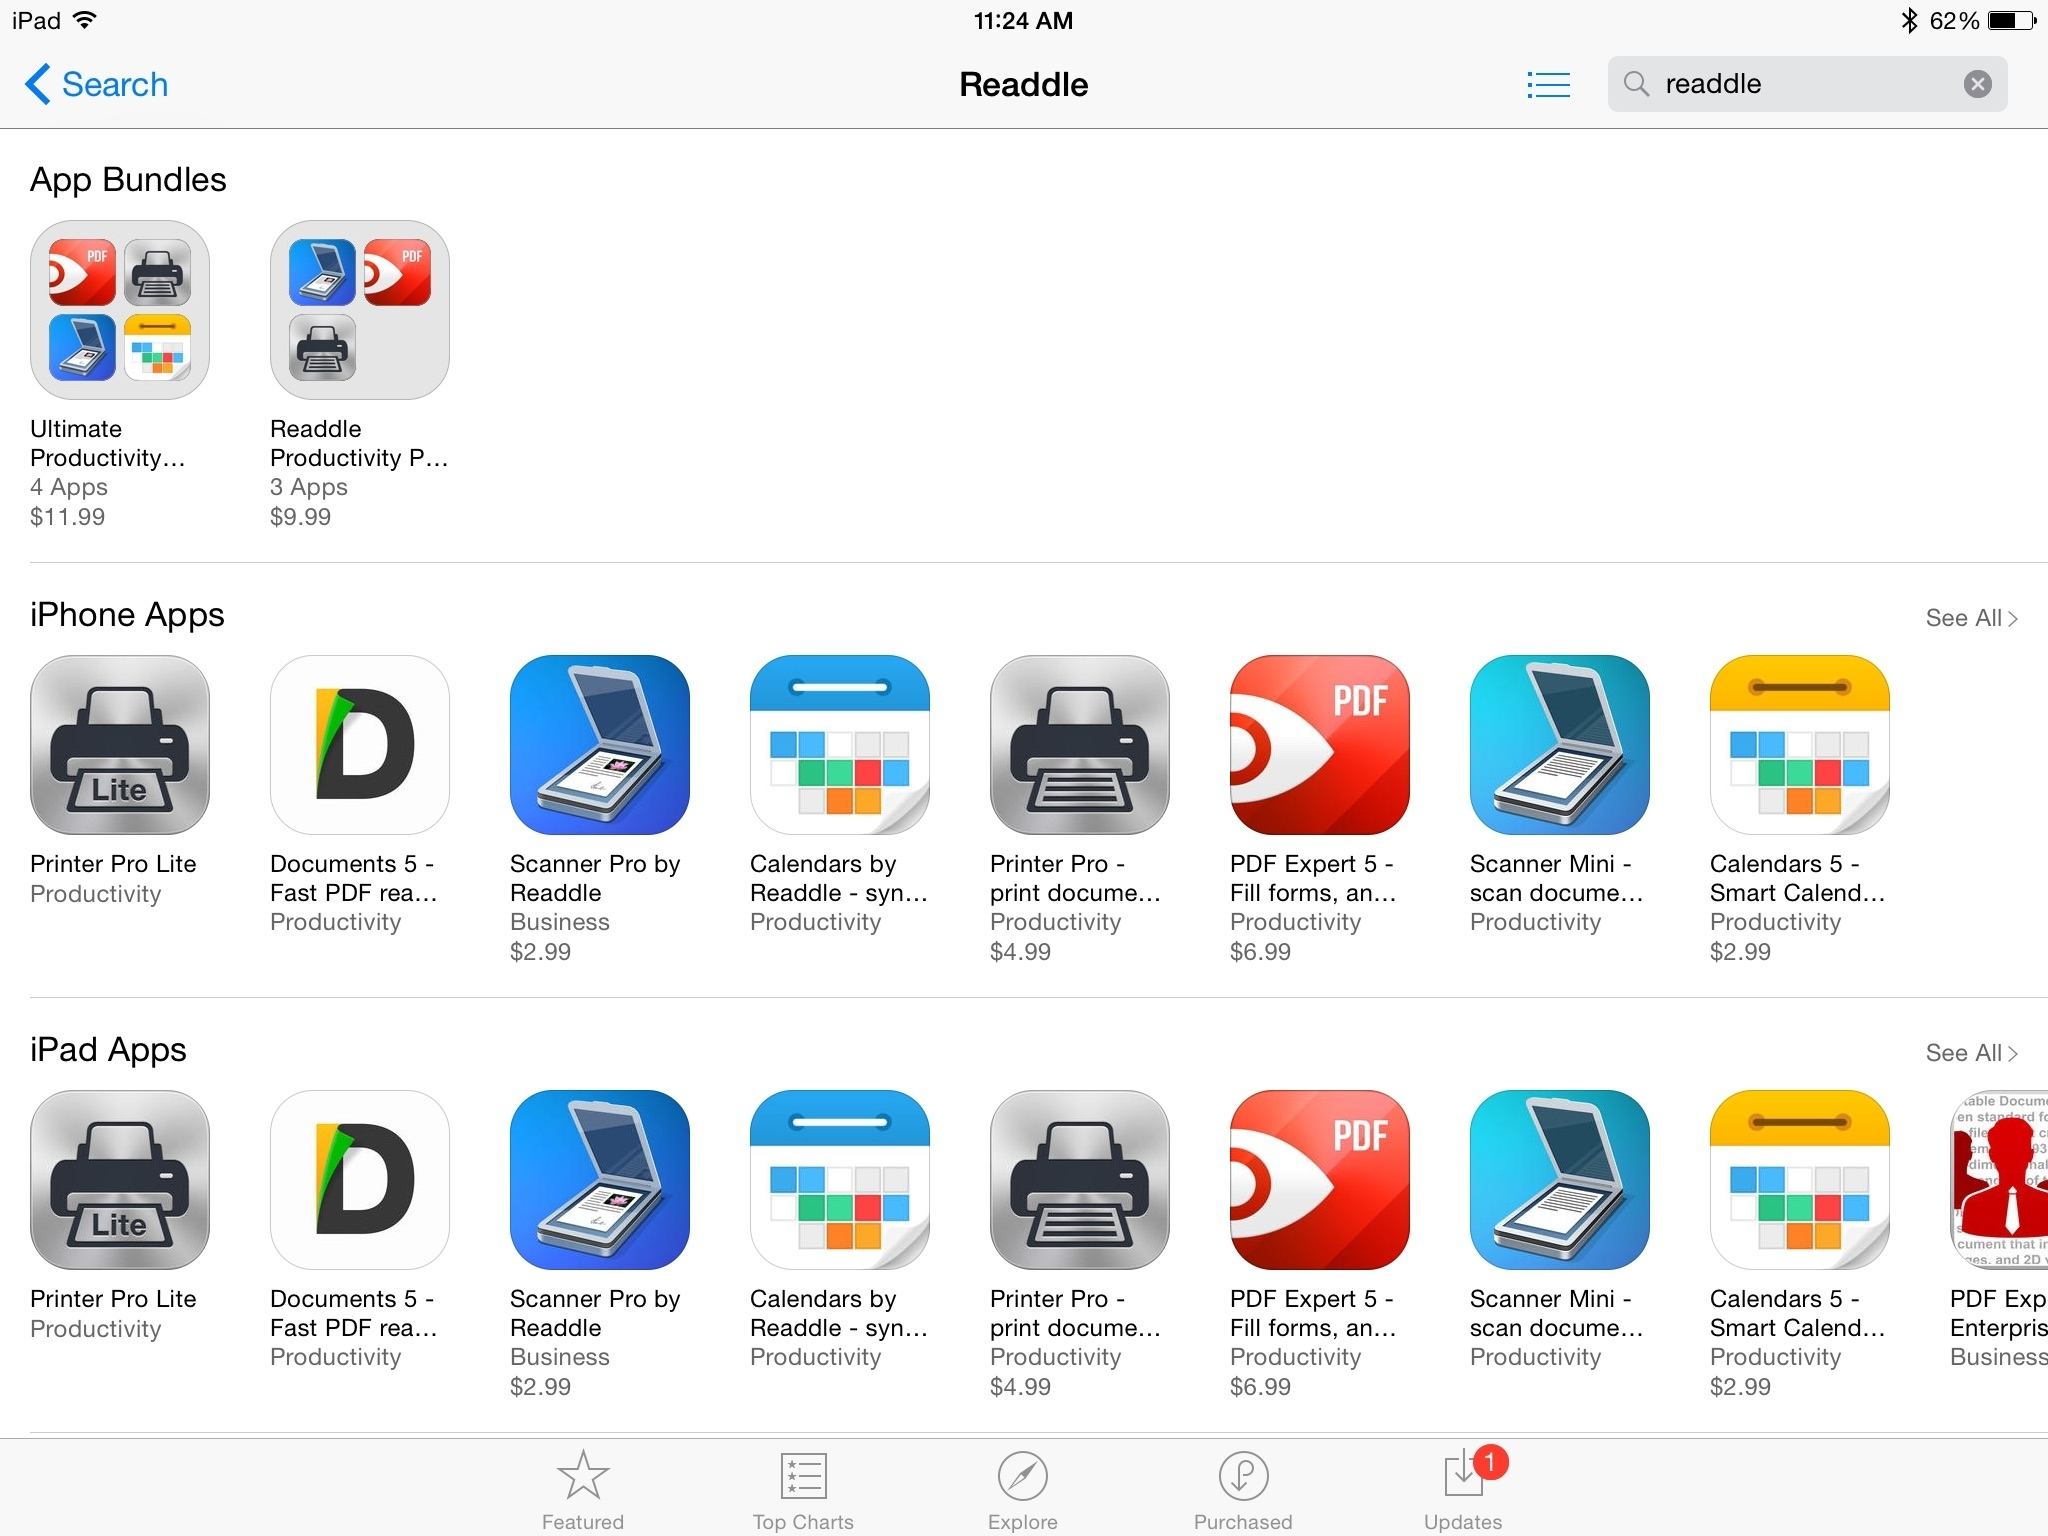 Readdle Discounts Its Popular Productivity Apps For